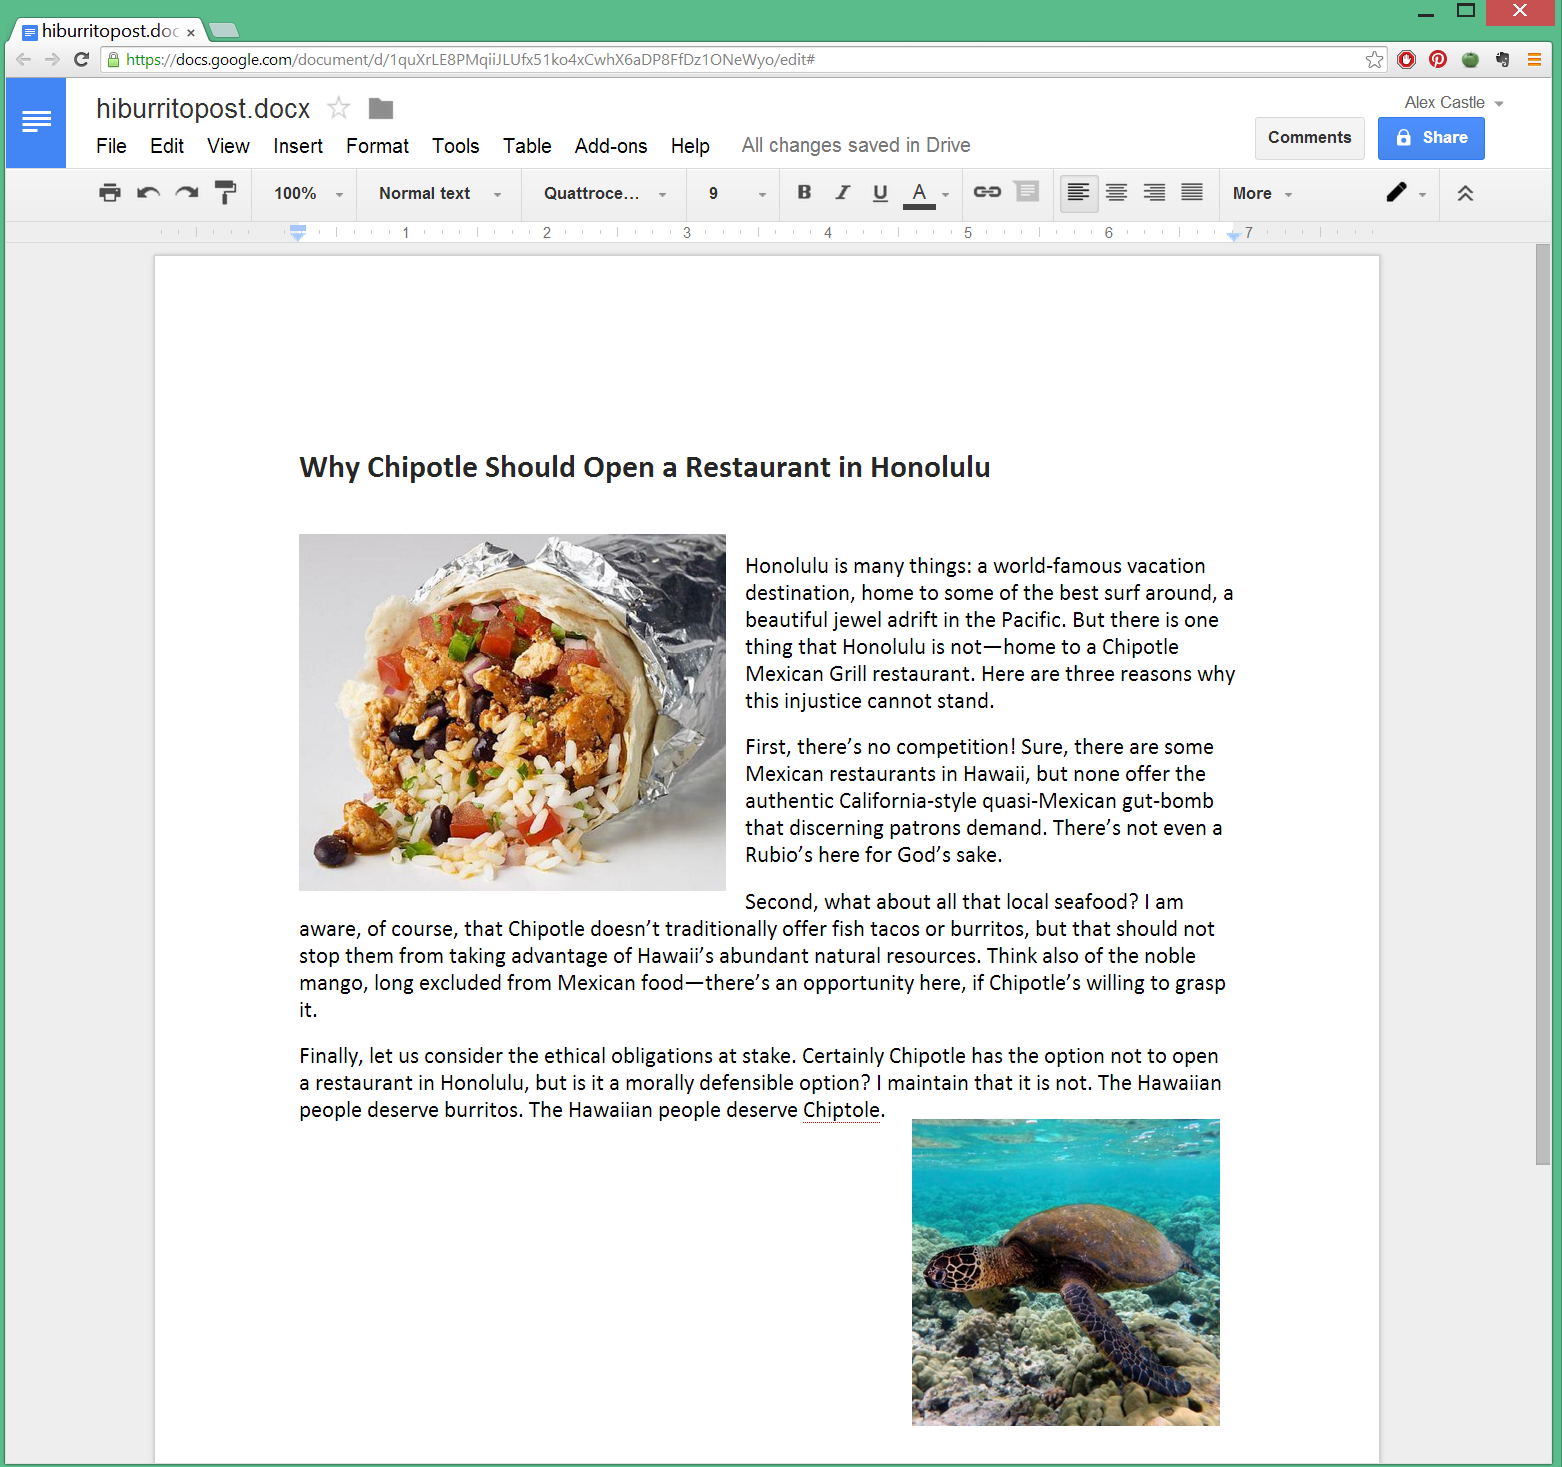 Blog: How To Start Blogging Using Microsoft Word With WordPress